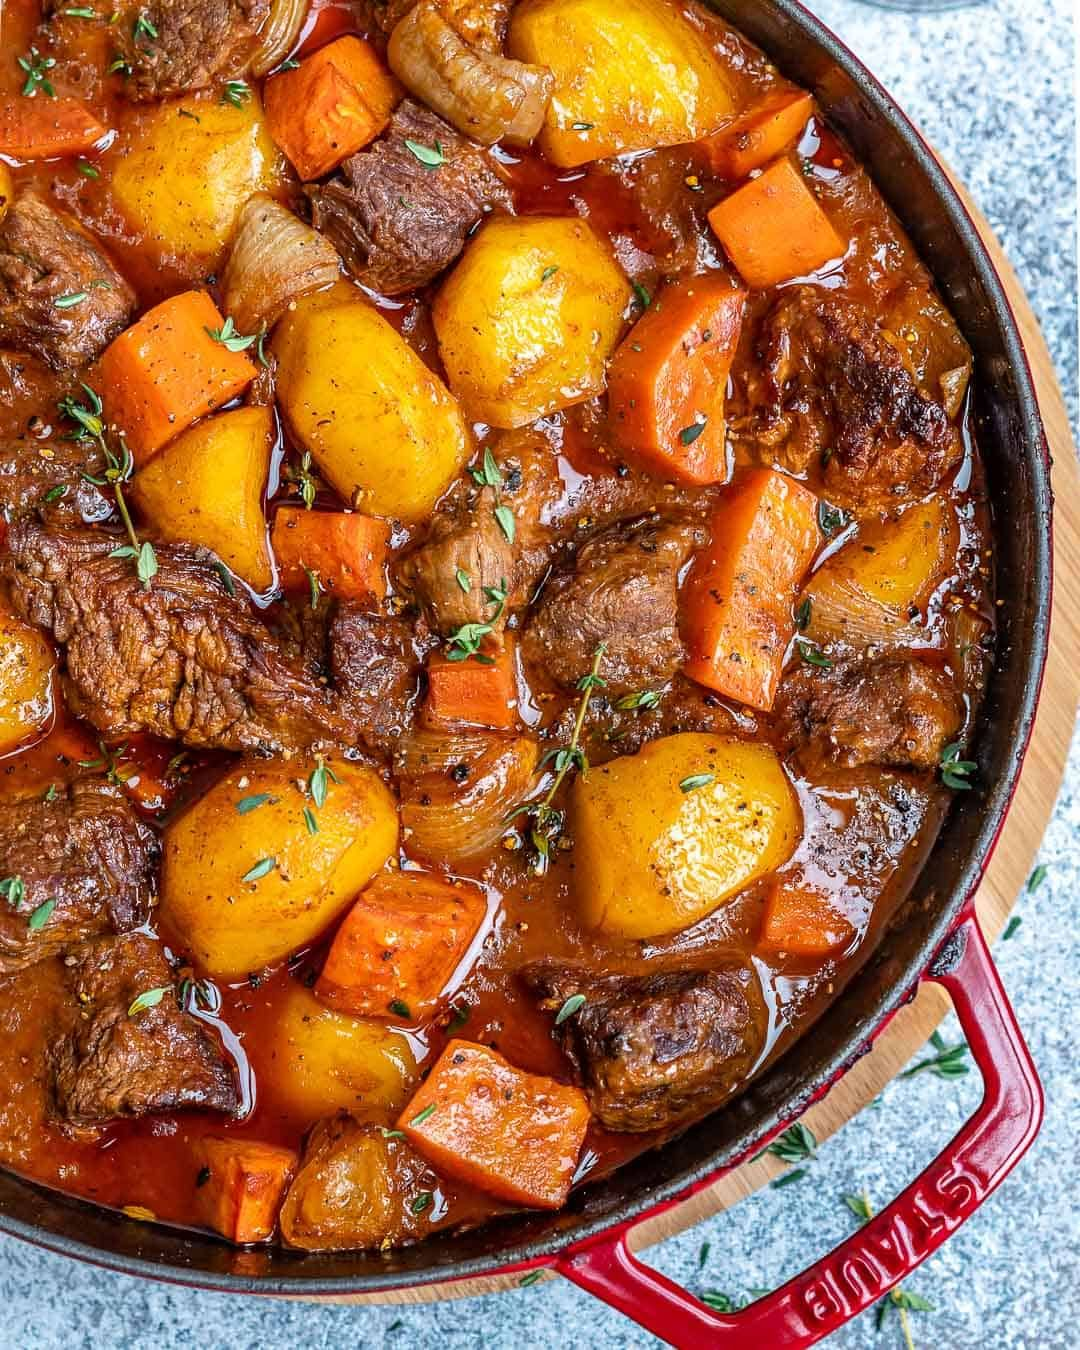 Easy Homemade Beef Stew Recipe Homemade Beef Stew Recipes Beef Stew Recipe Homemade Beef Stew Easy